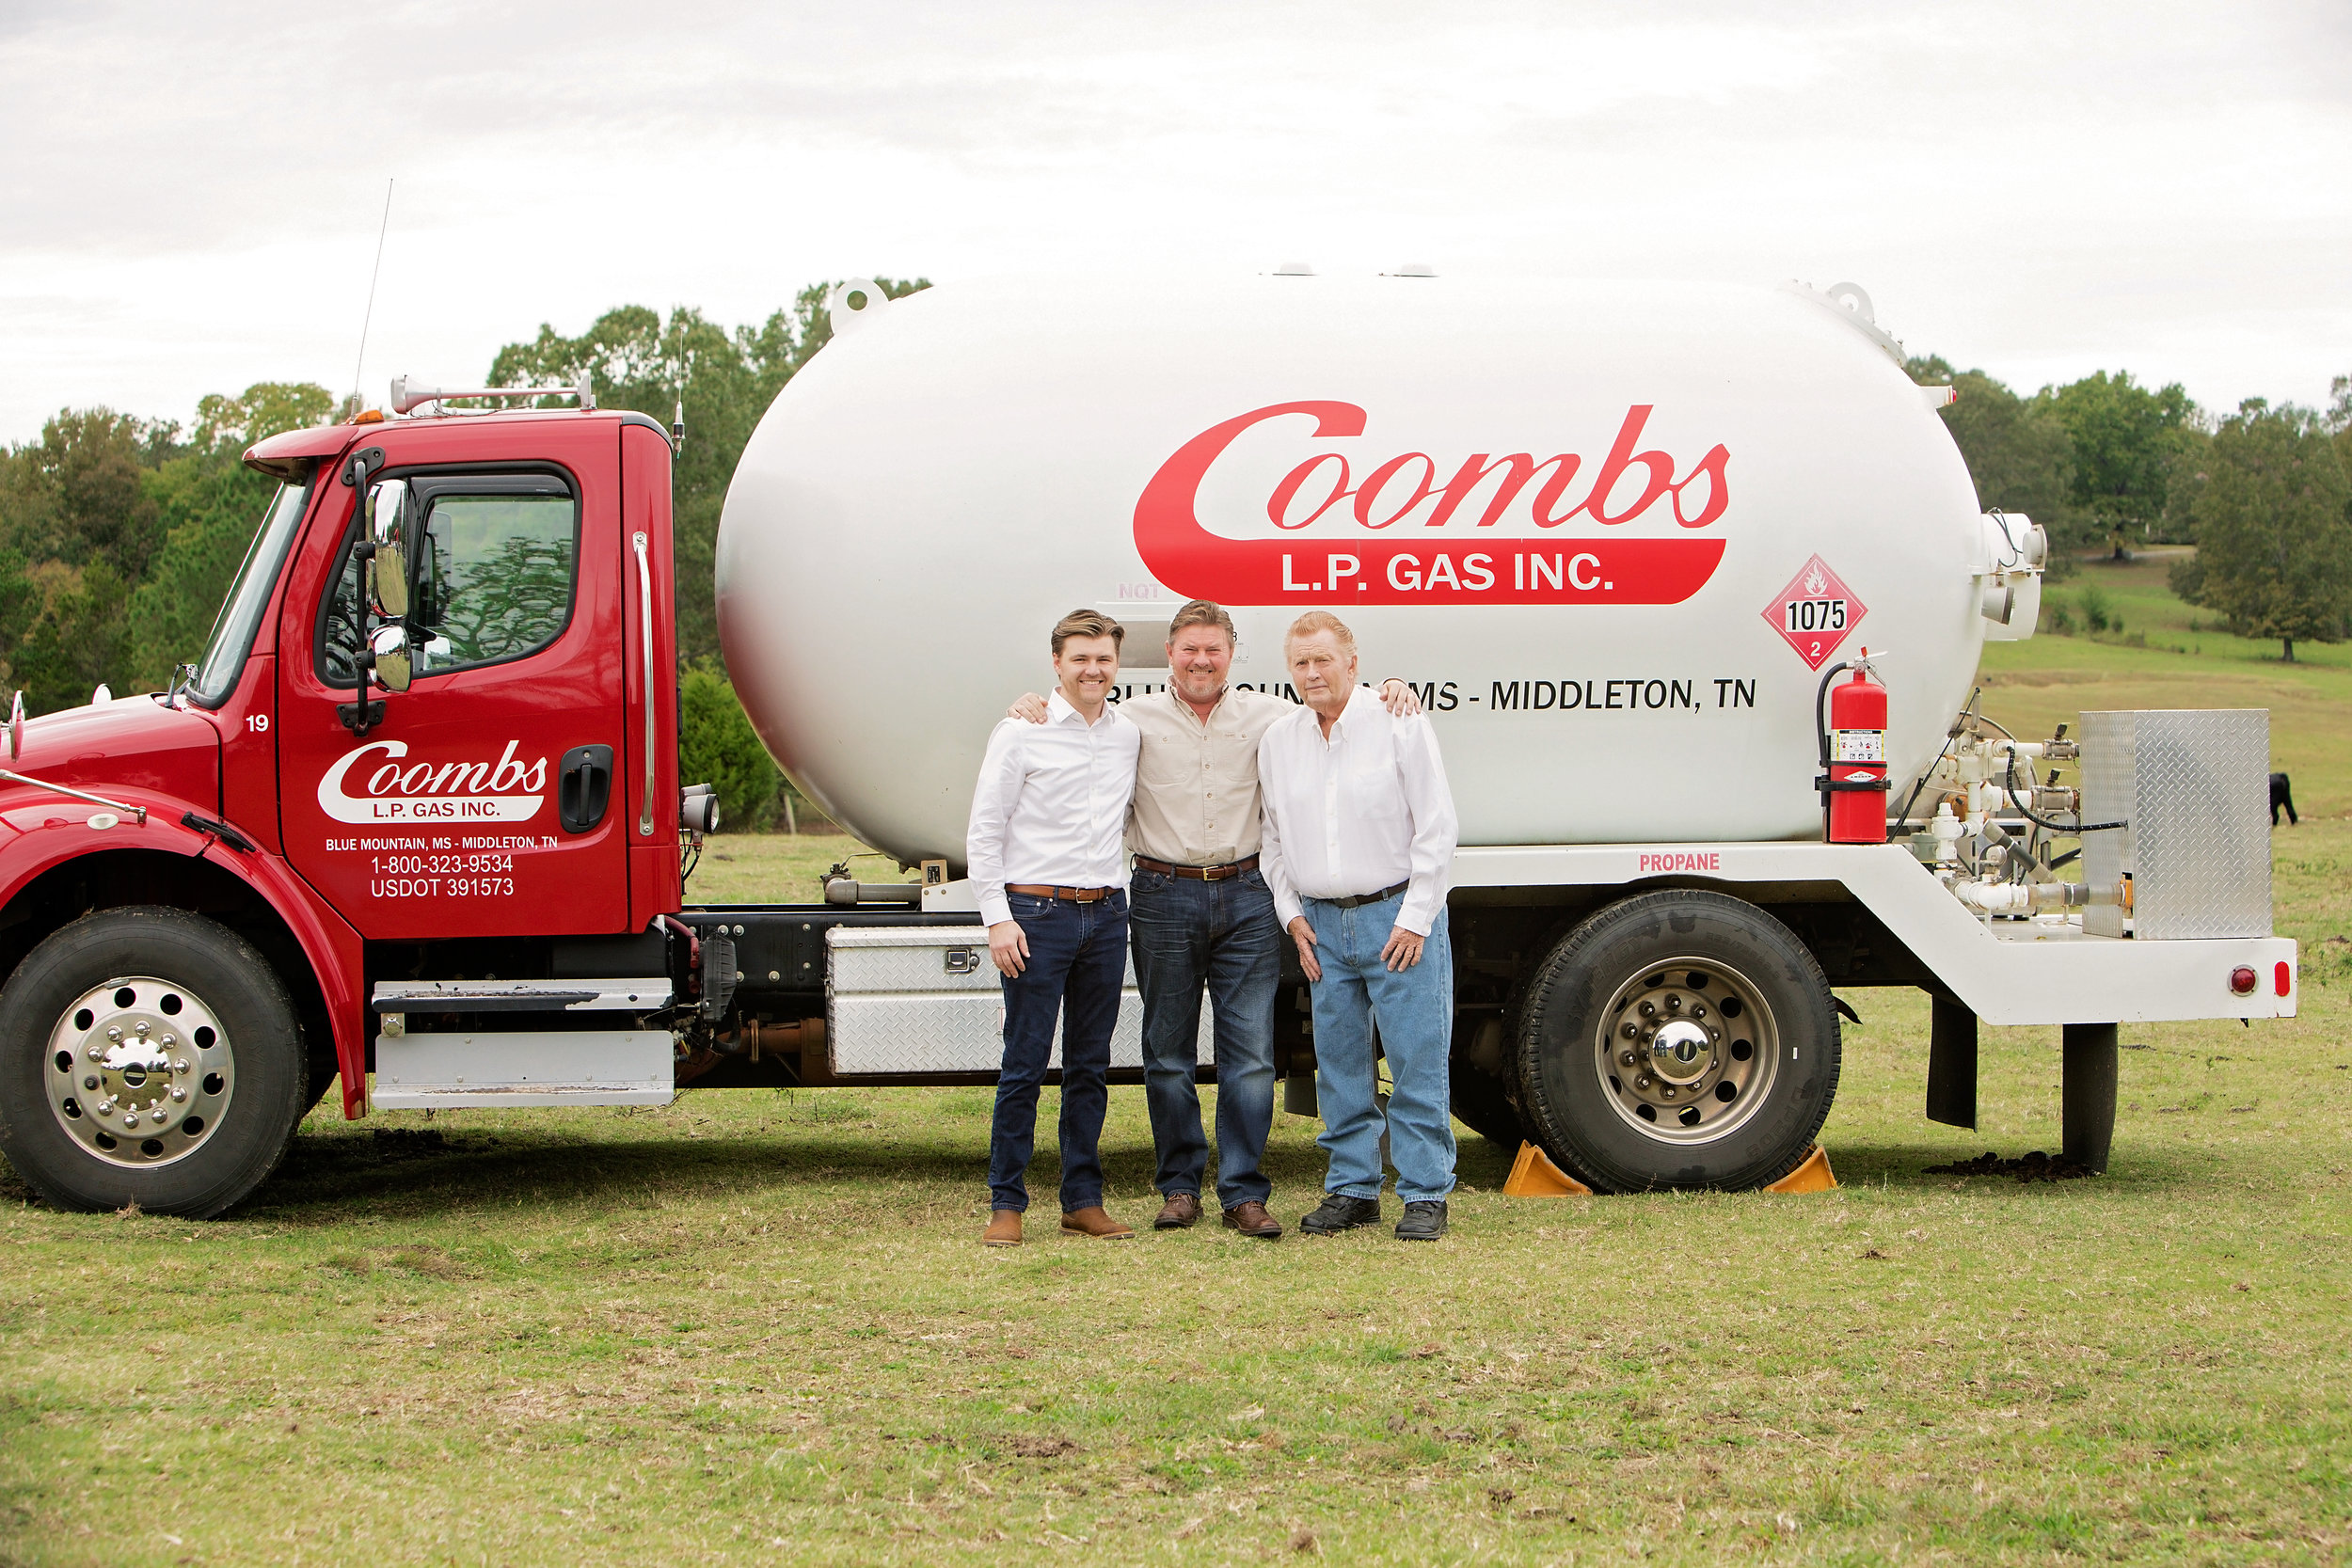 A Family Tradition - Coombs Gas has been providing propane gas to our customers since 1969. Family-owned and operated, we've proudly served customers in Mississippi and Tennessee for four generations.Learn More